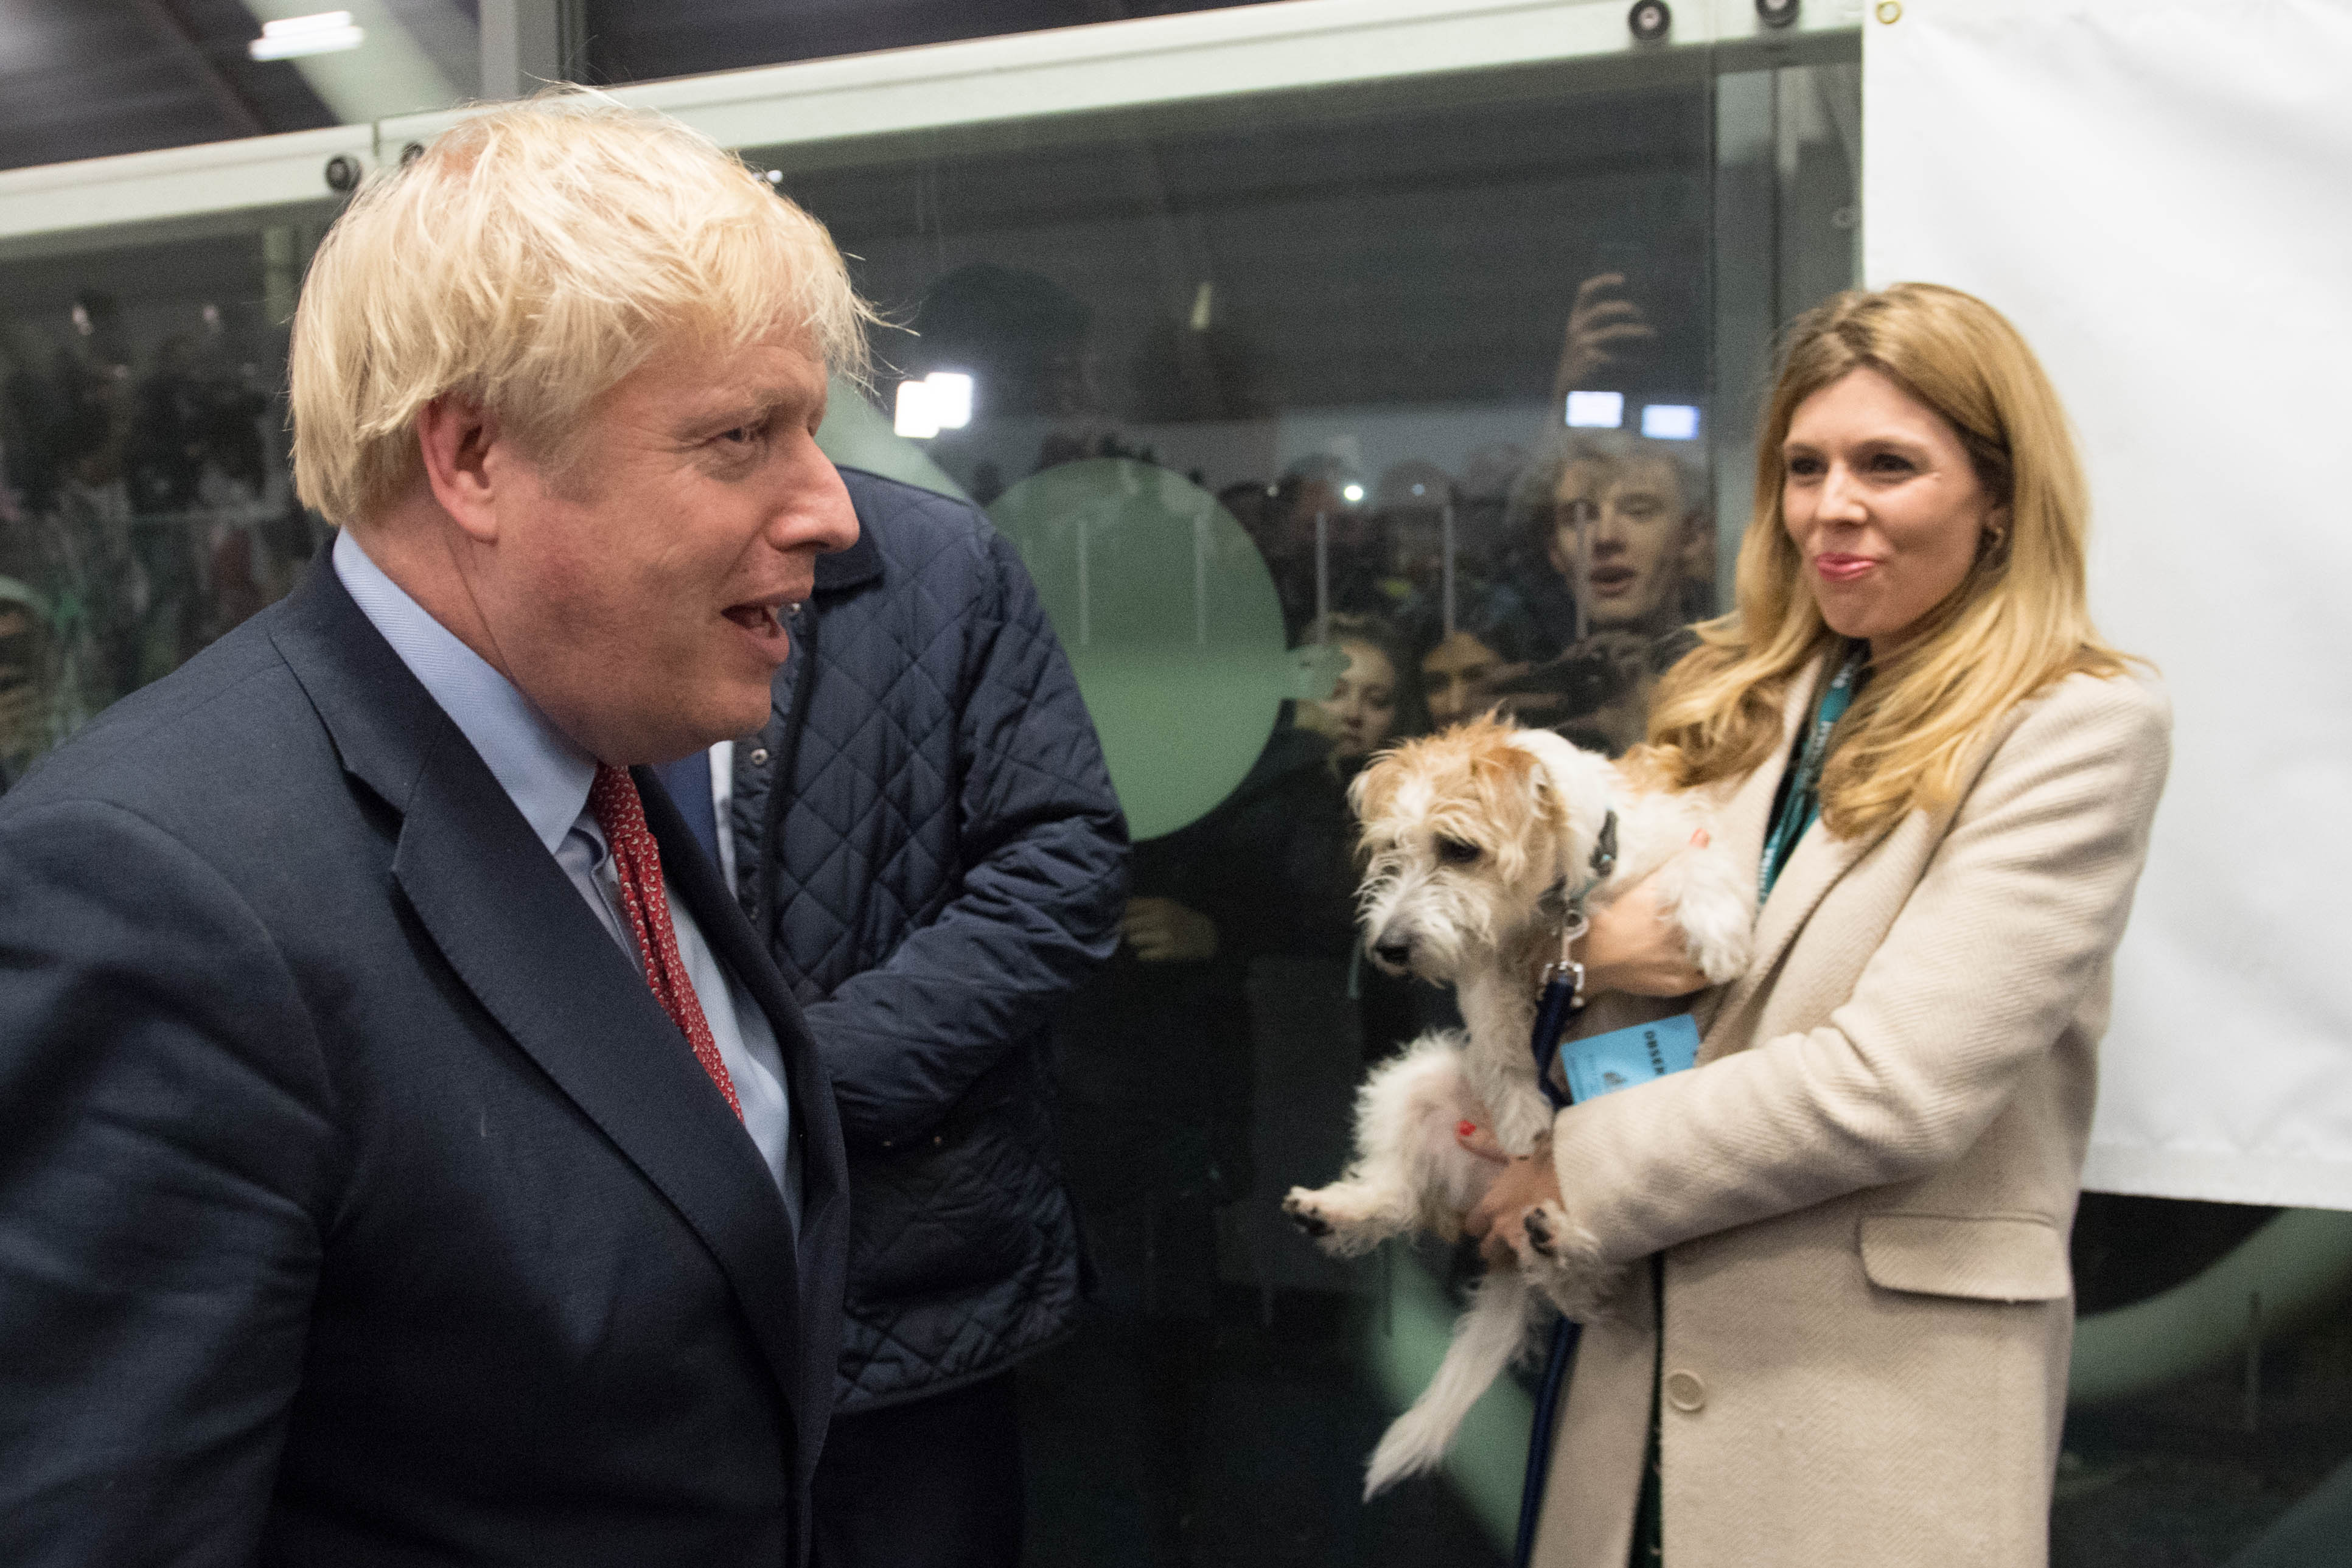 Prime Minister Boris Johnson with partner Carrie Symonds and dog Dilyn at the count for the Uxbridge & Ruislip South constituency in the 2019 General Election.